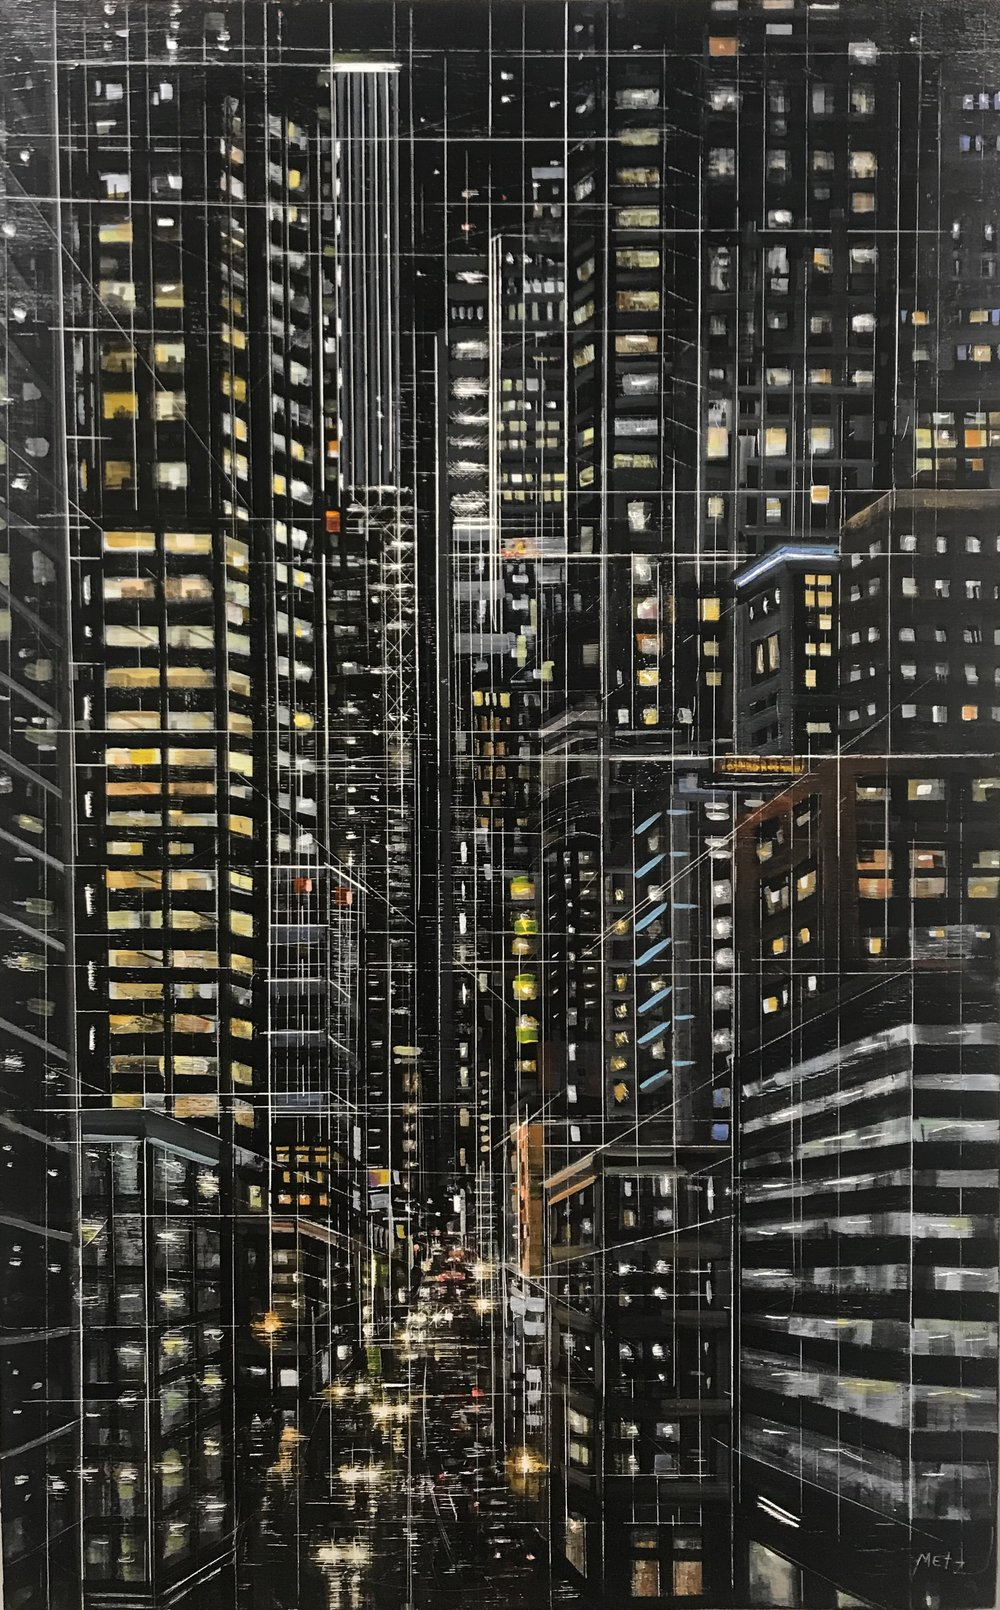 City Darshan 22 46x29in acrylic on panel 2018.JPG